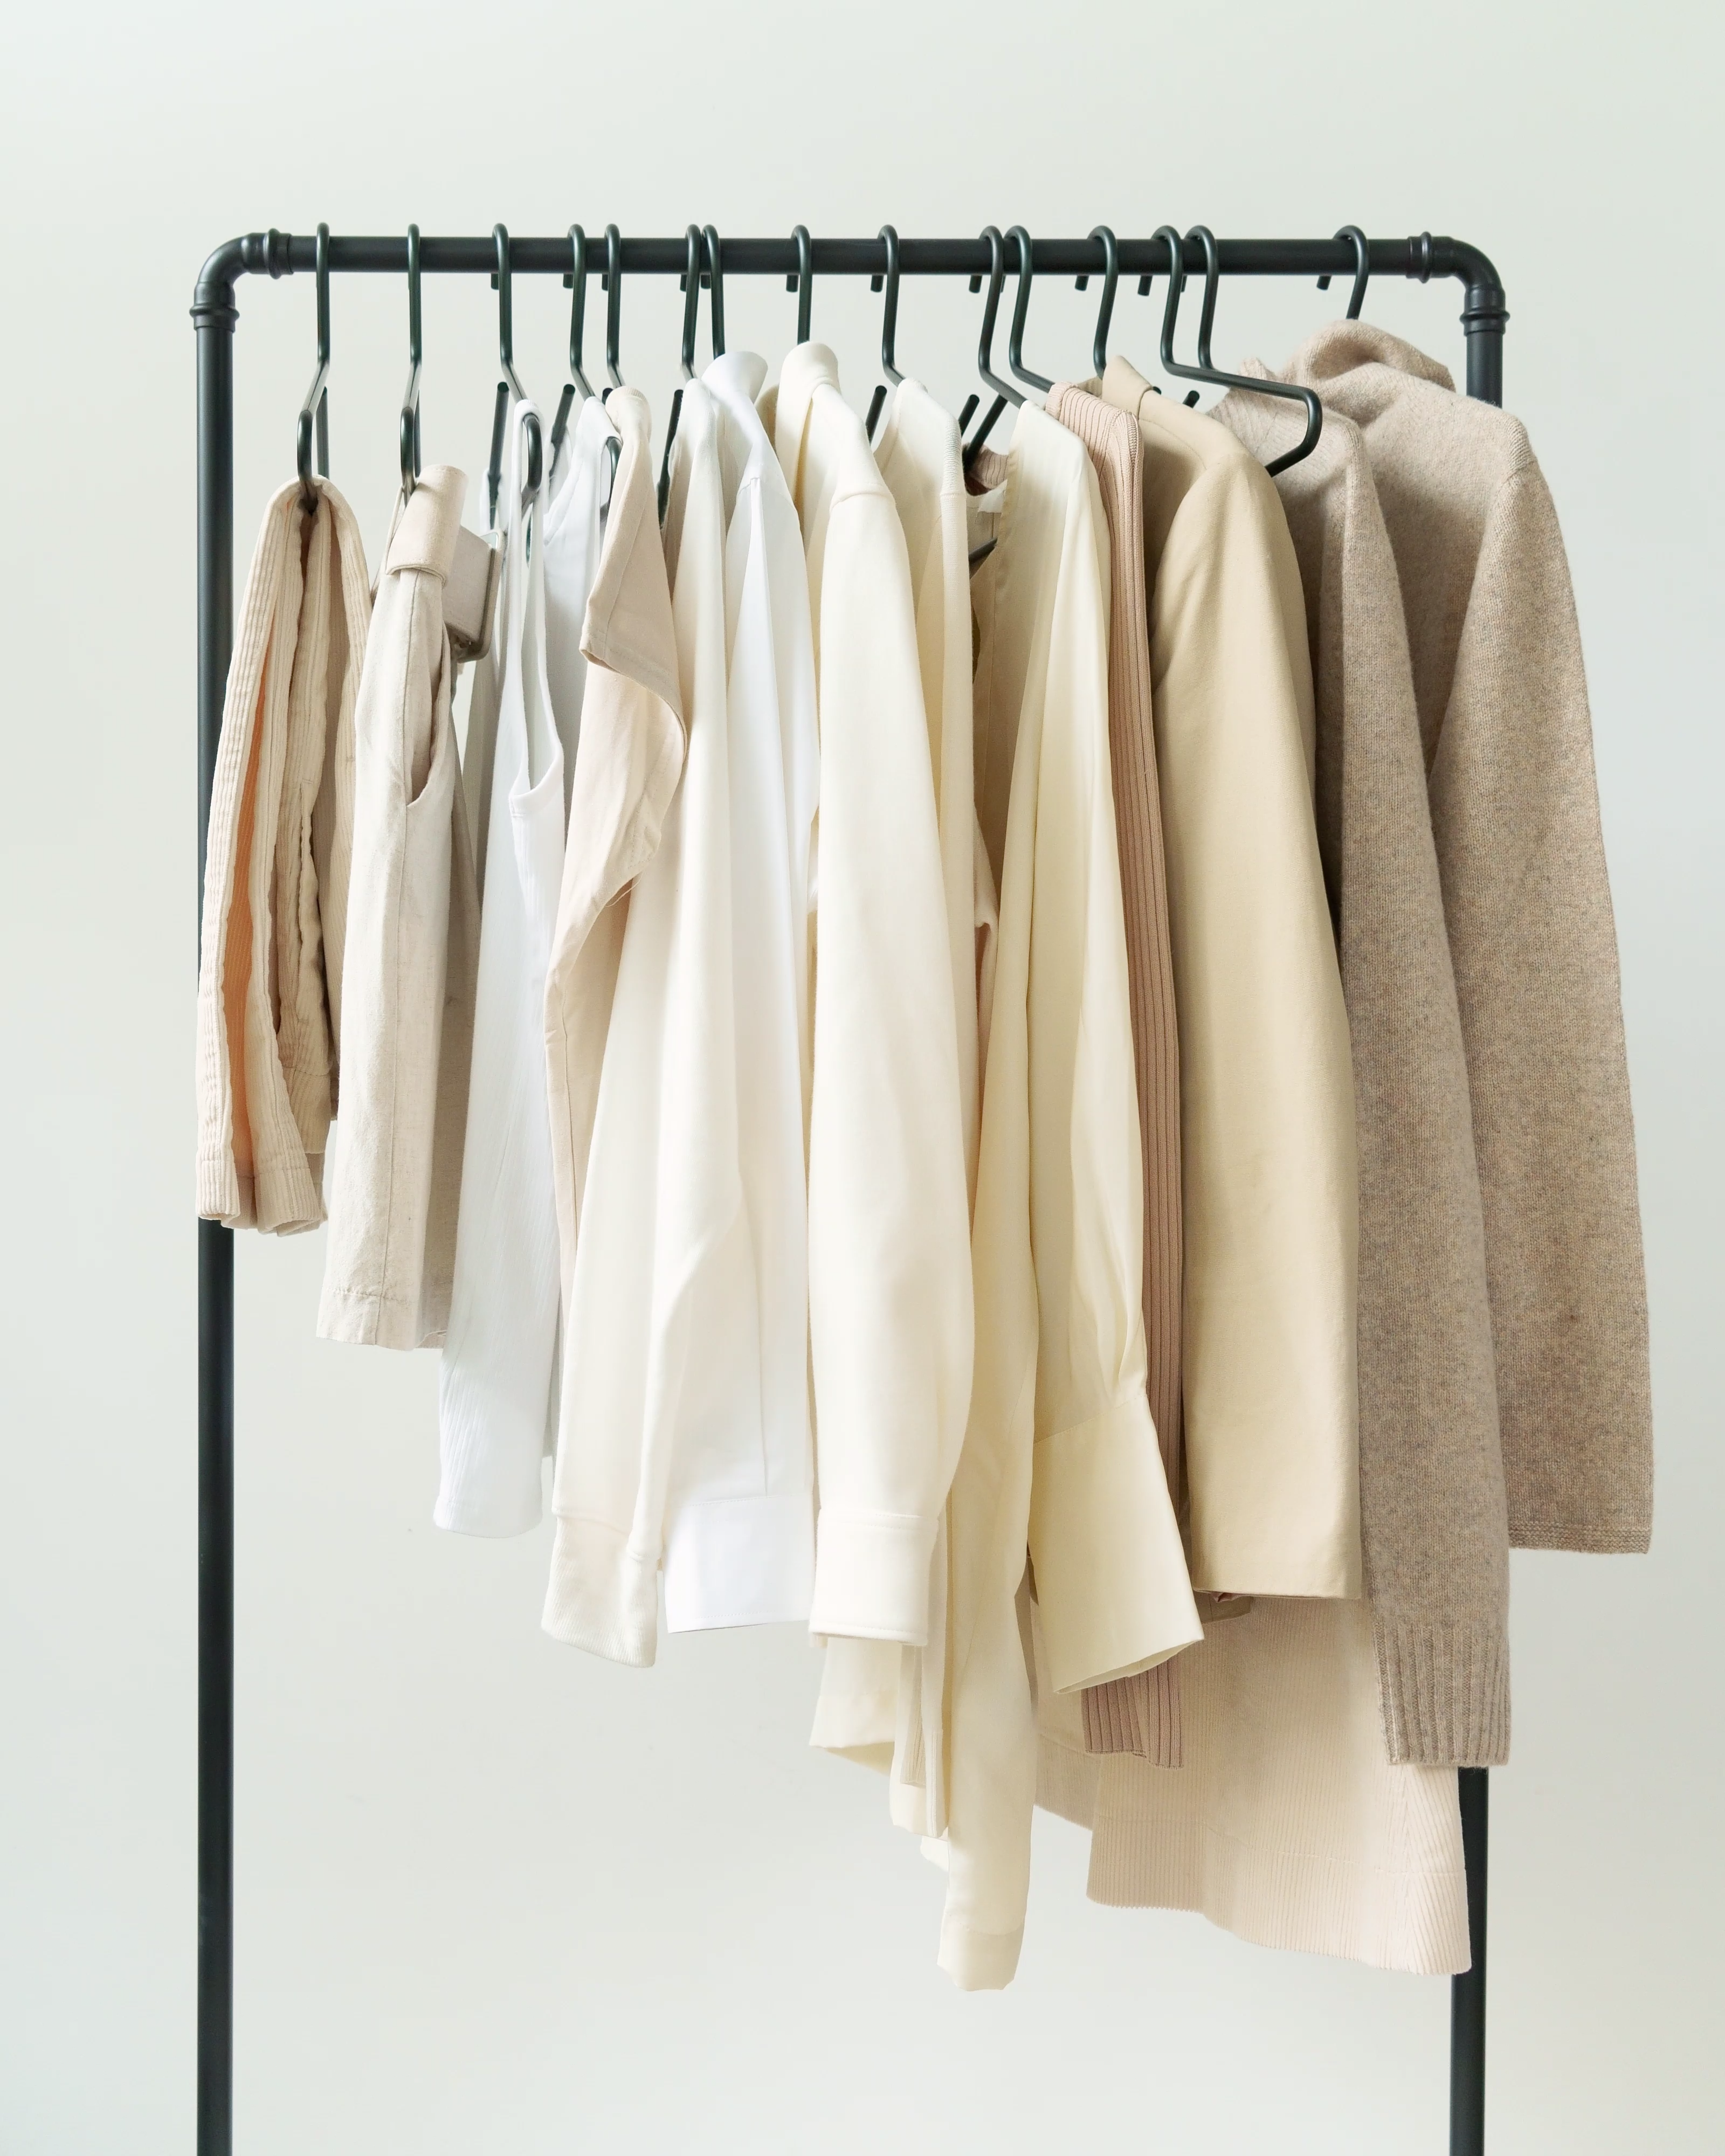 How to make extra room in your wardrobe